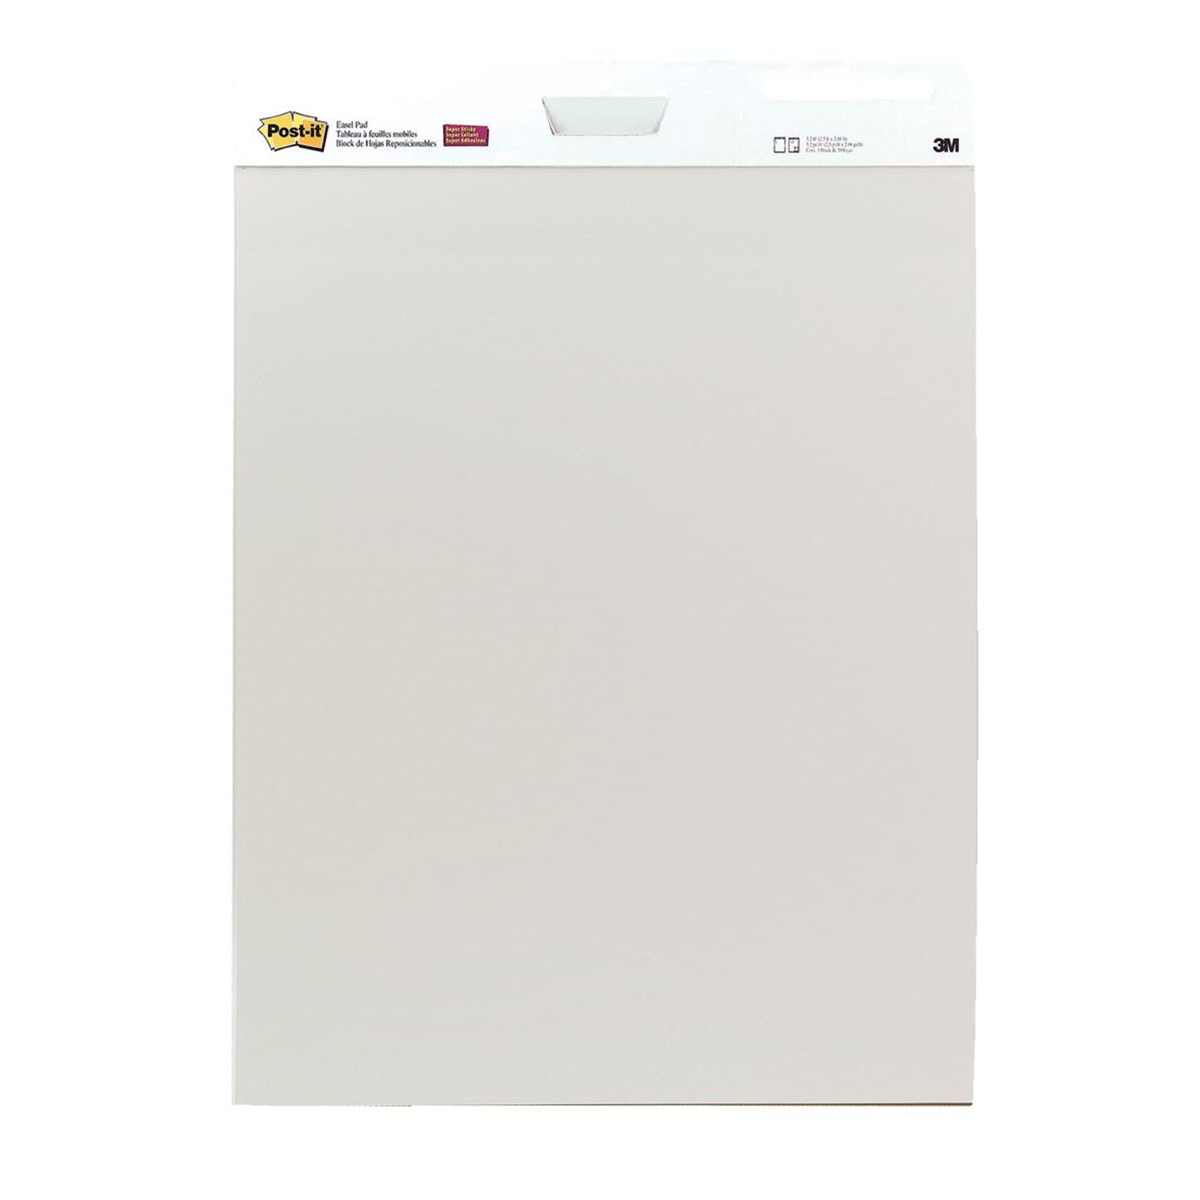 Post-it Easel Pad Self-adhesive 30 Sheets 762x635mm Ref FT510105826 [4x Free Note Pads] [Pack 2]